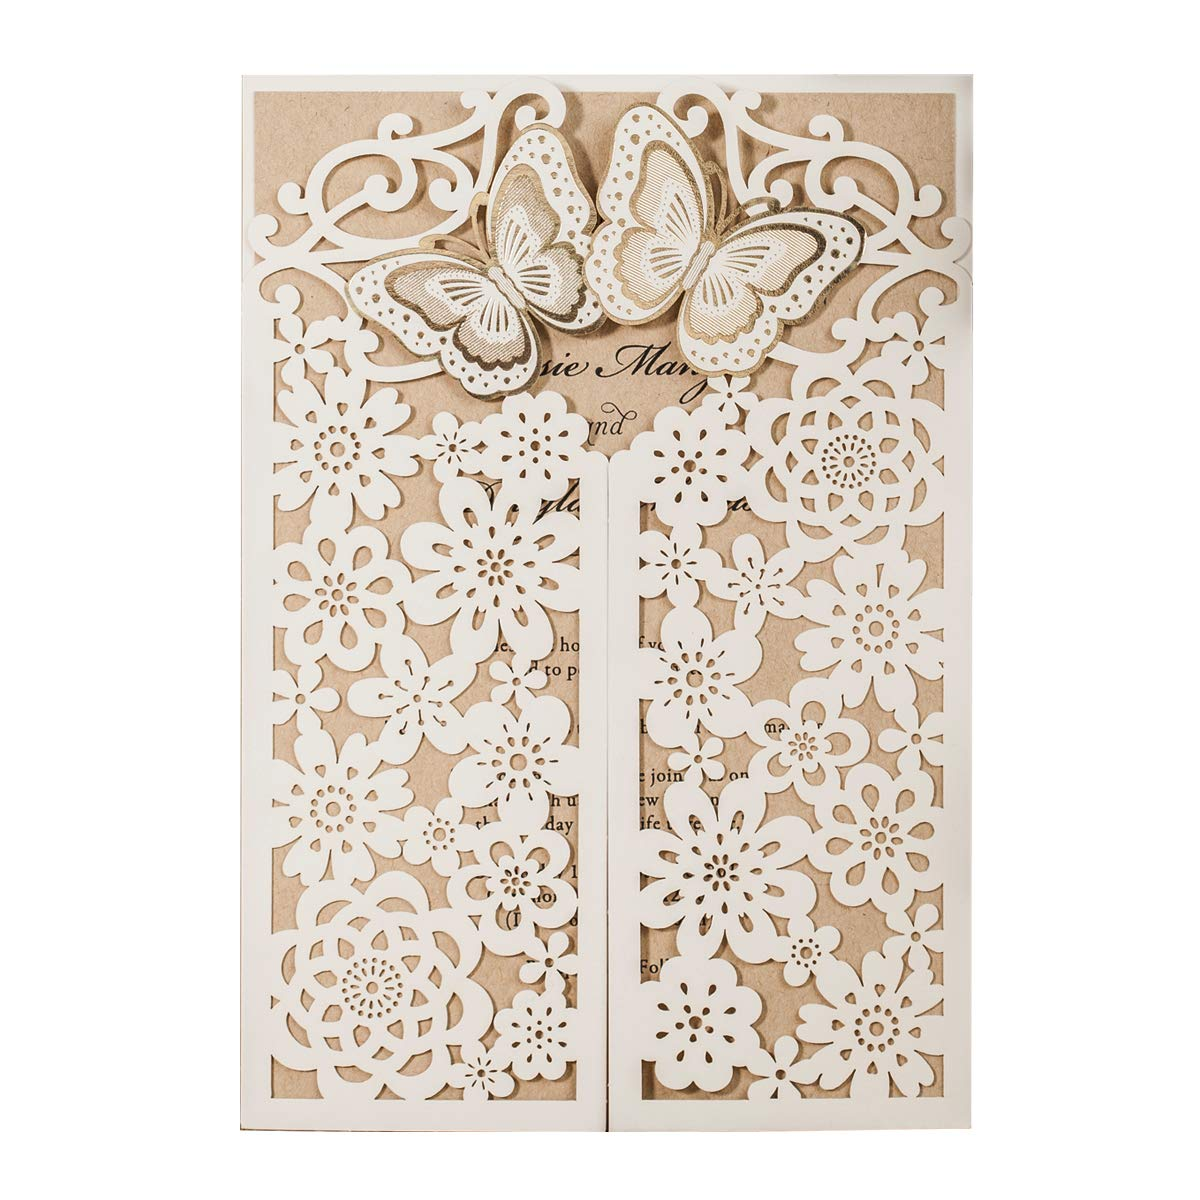 WISHMADE 50 Wedding Invitation Cards Laser Cut Floral Butterfly Card Stock White with Envelopes, Stickers for Engagement,Baby Shower, Birthday Party